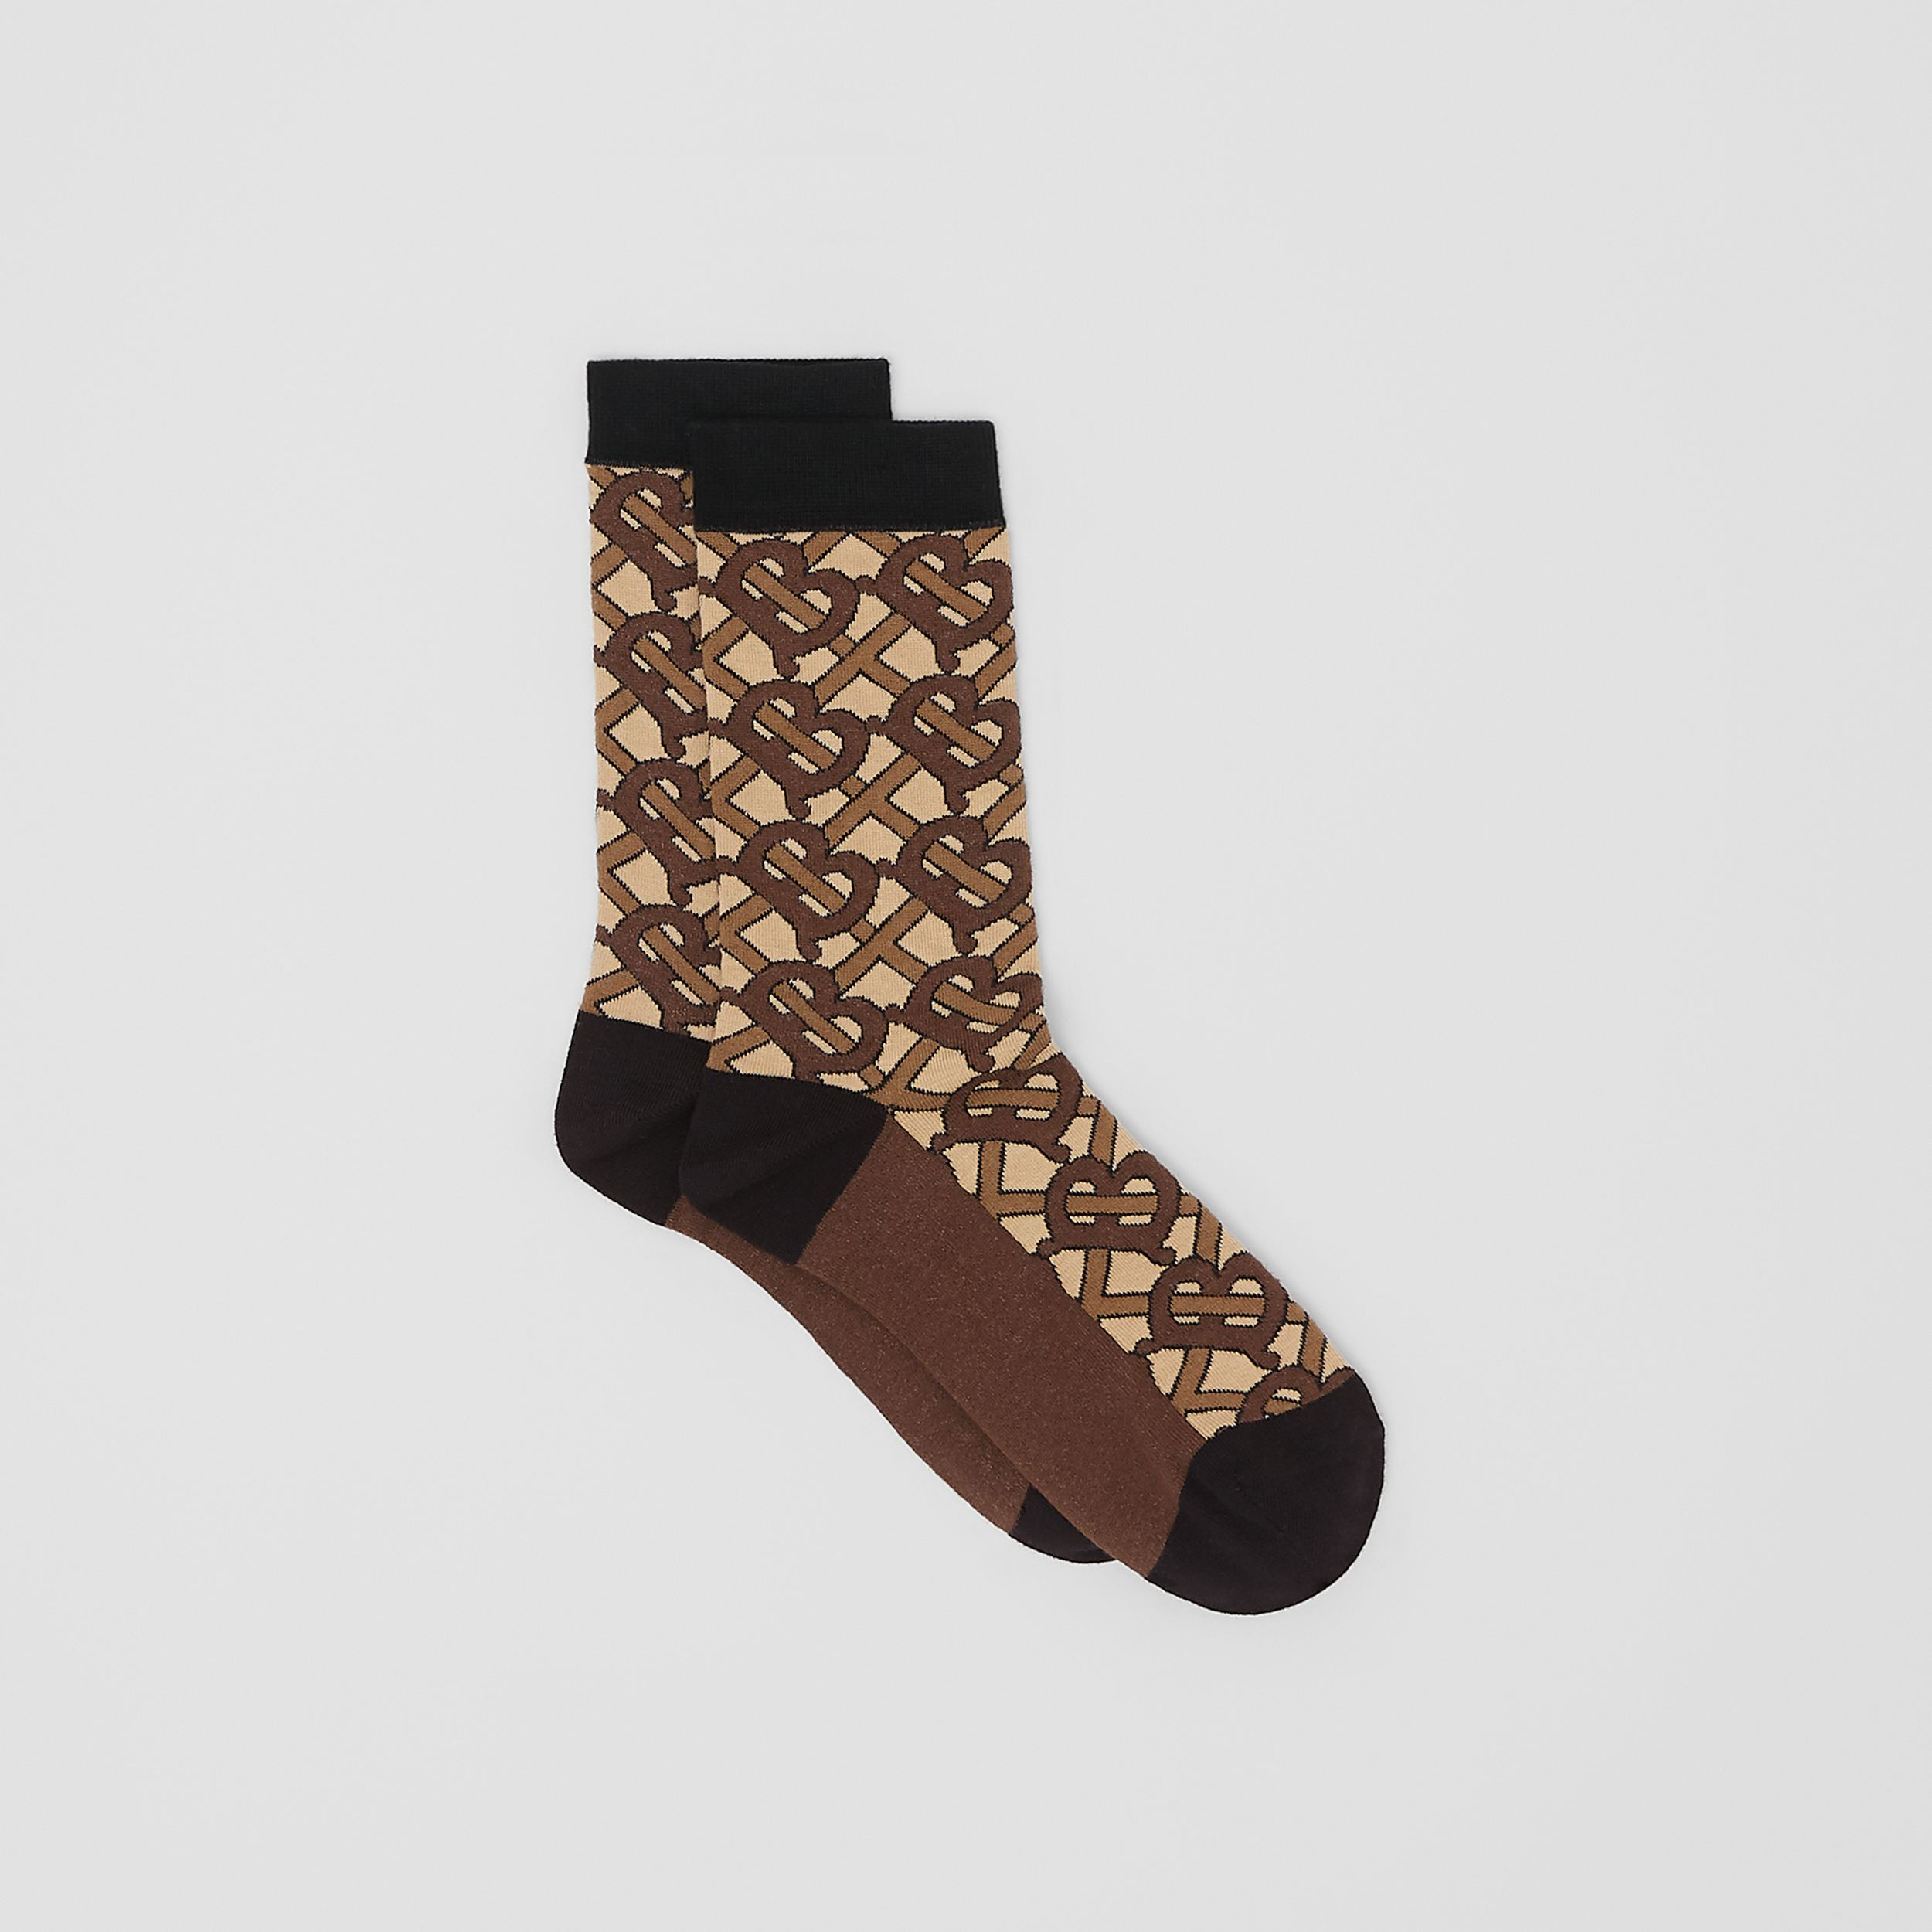 Monogram Intarsia Cotton Blend Socks in Bridle Brown | Burberry - 3